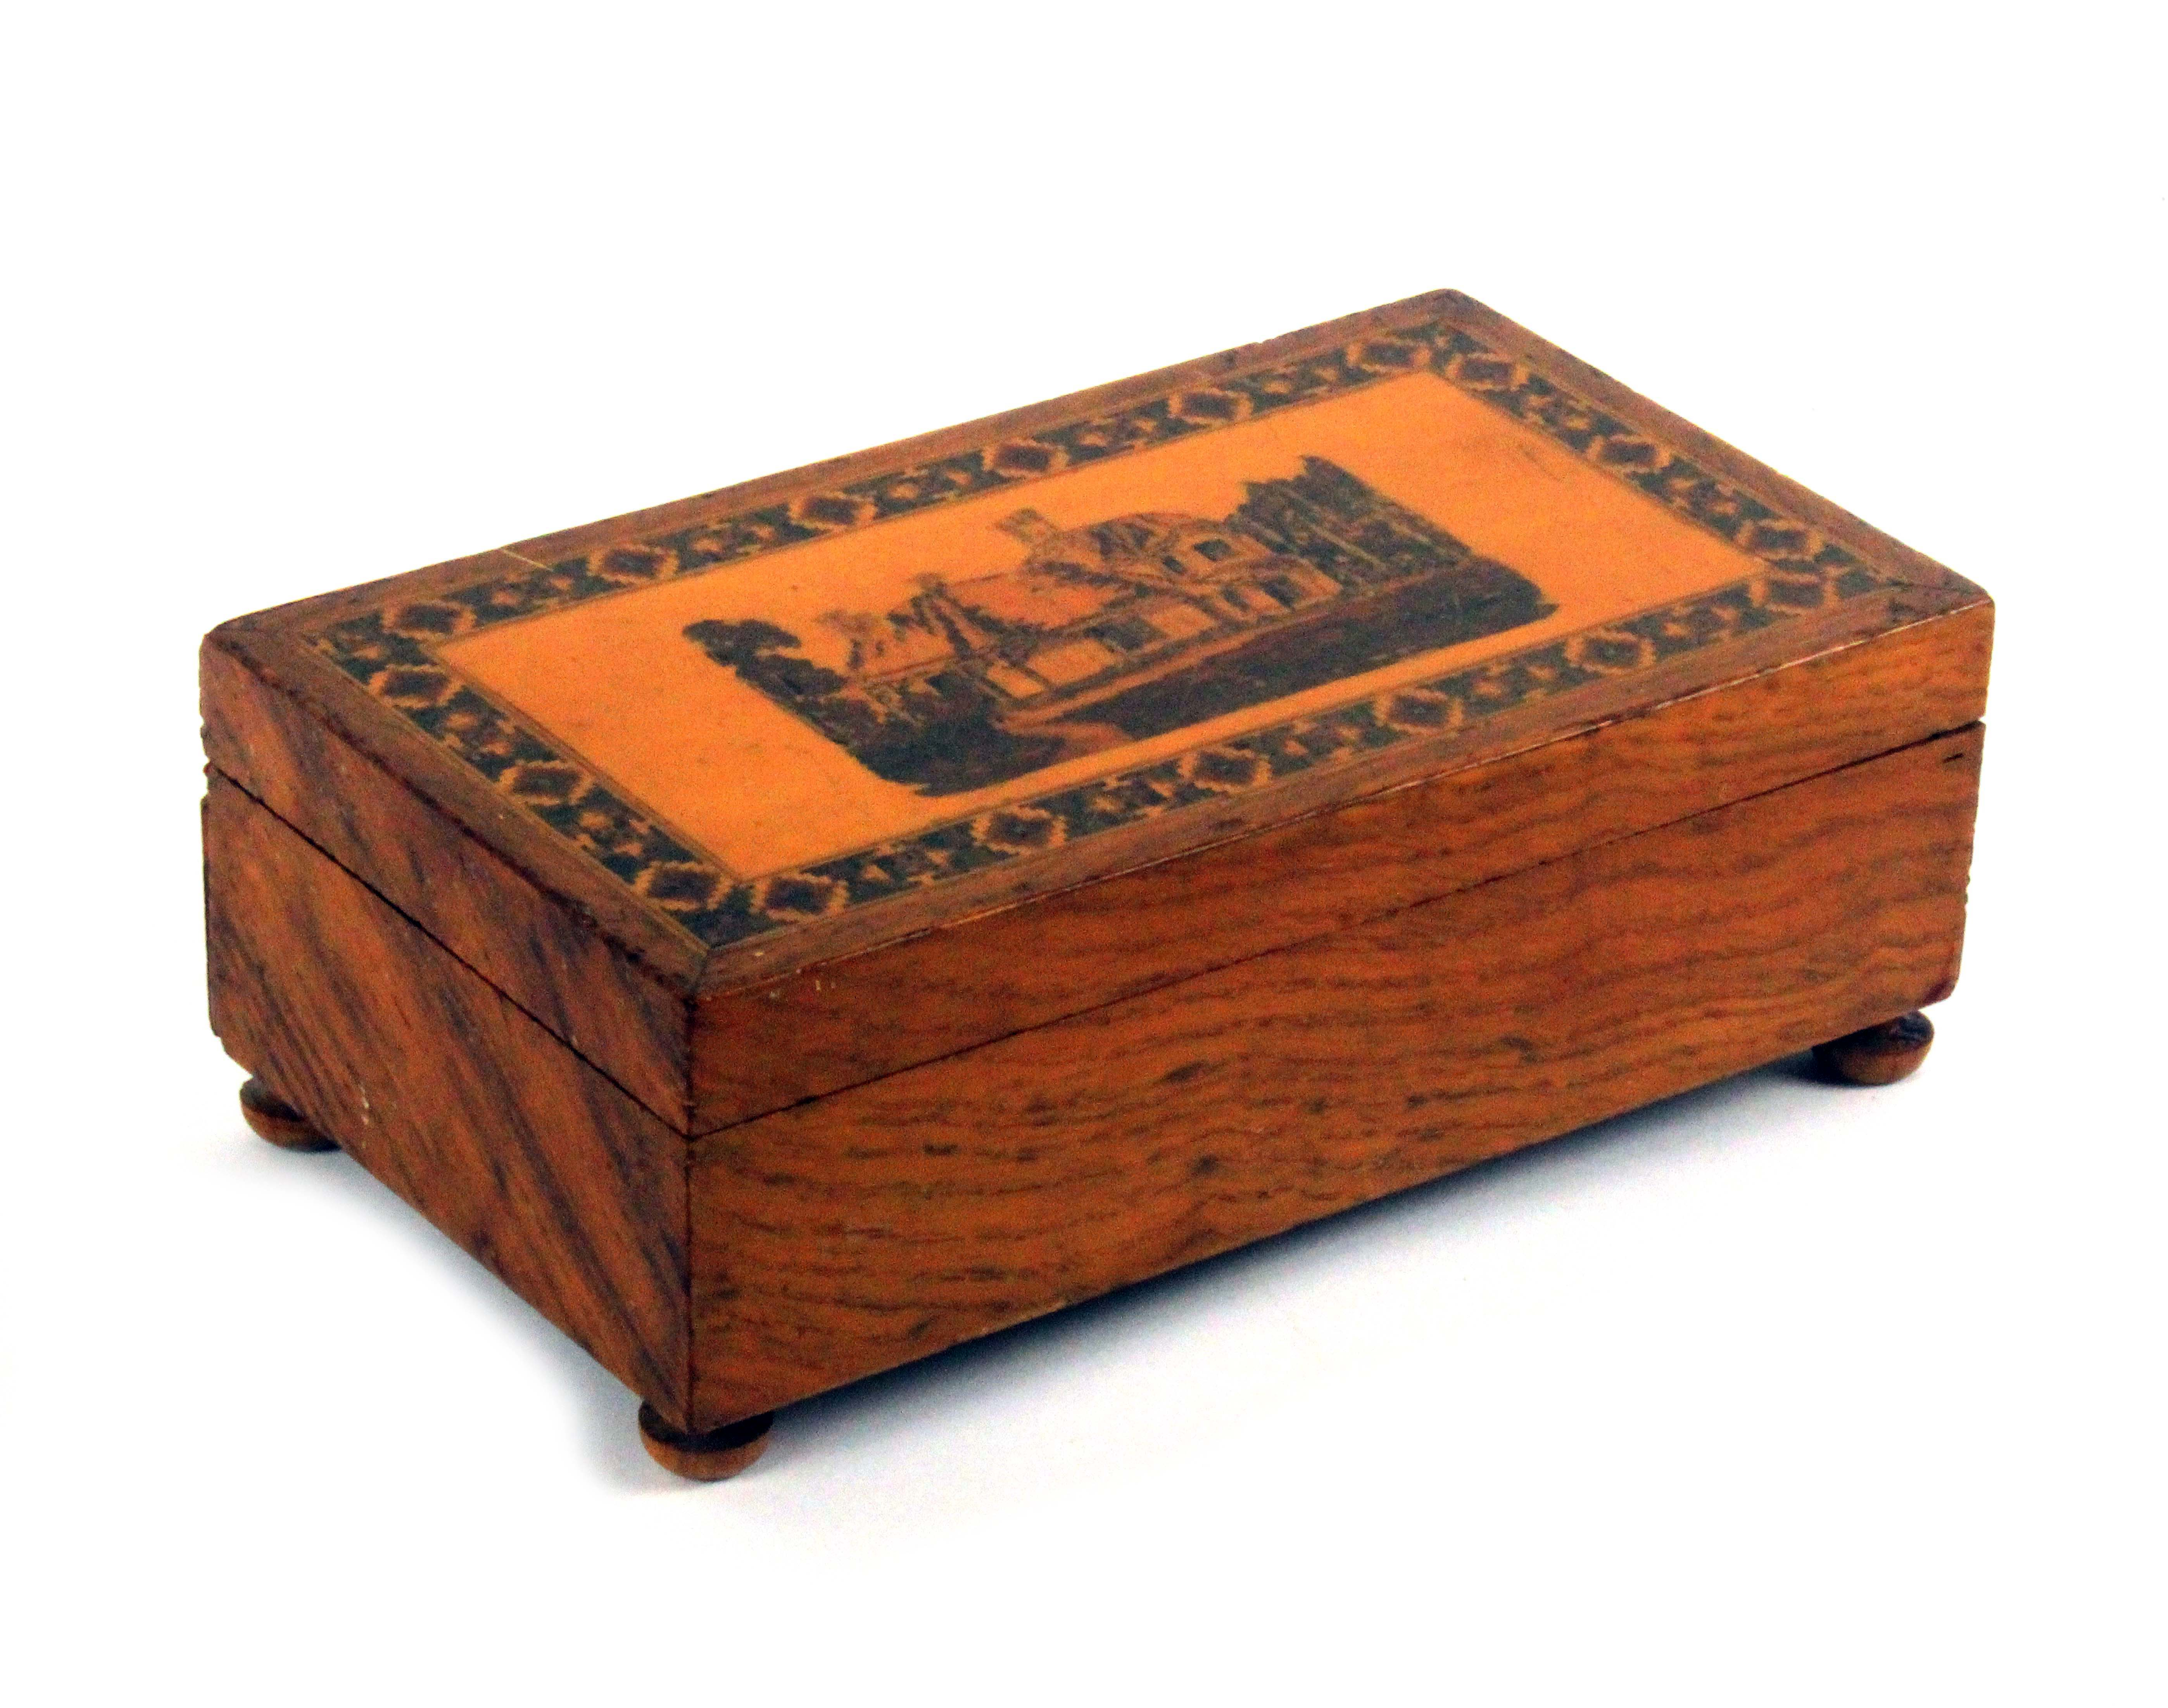 A late Tunbridge ware figured oak card box, of rectangular form, the lid with an inset mosaic